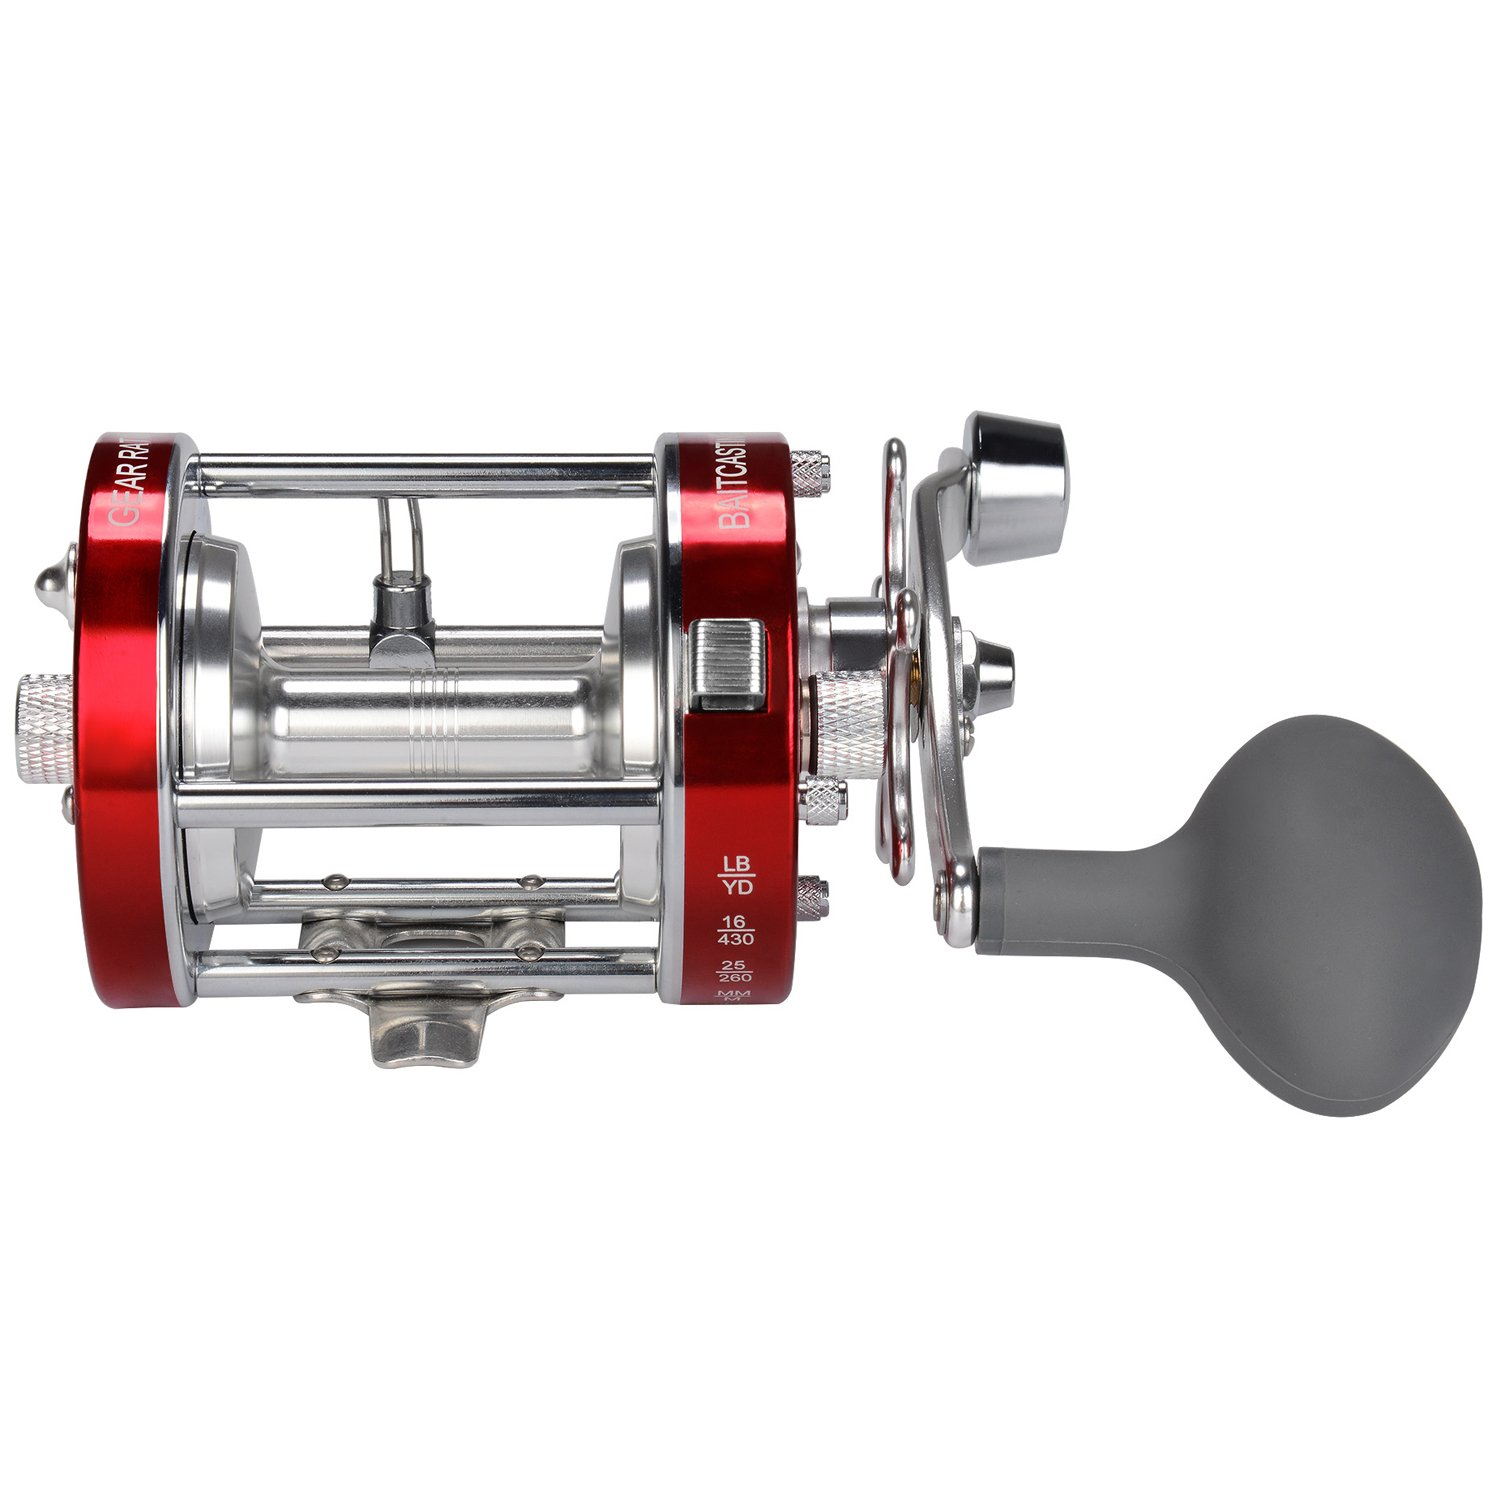 KastKing Rover Round Baitcasting Reel, Right Handed Reel,Rover80 by KastKing (Image #2)